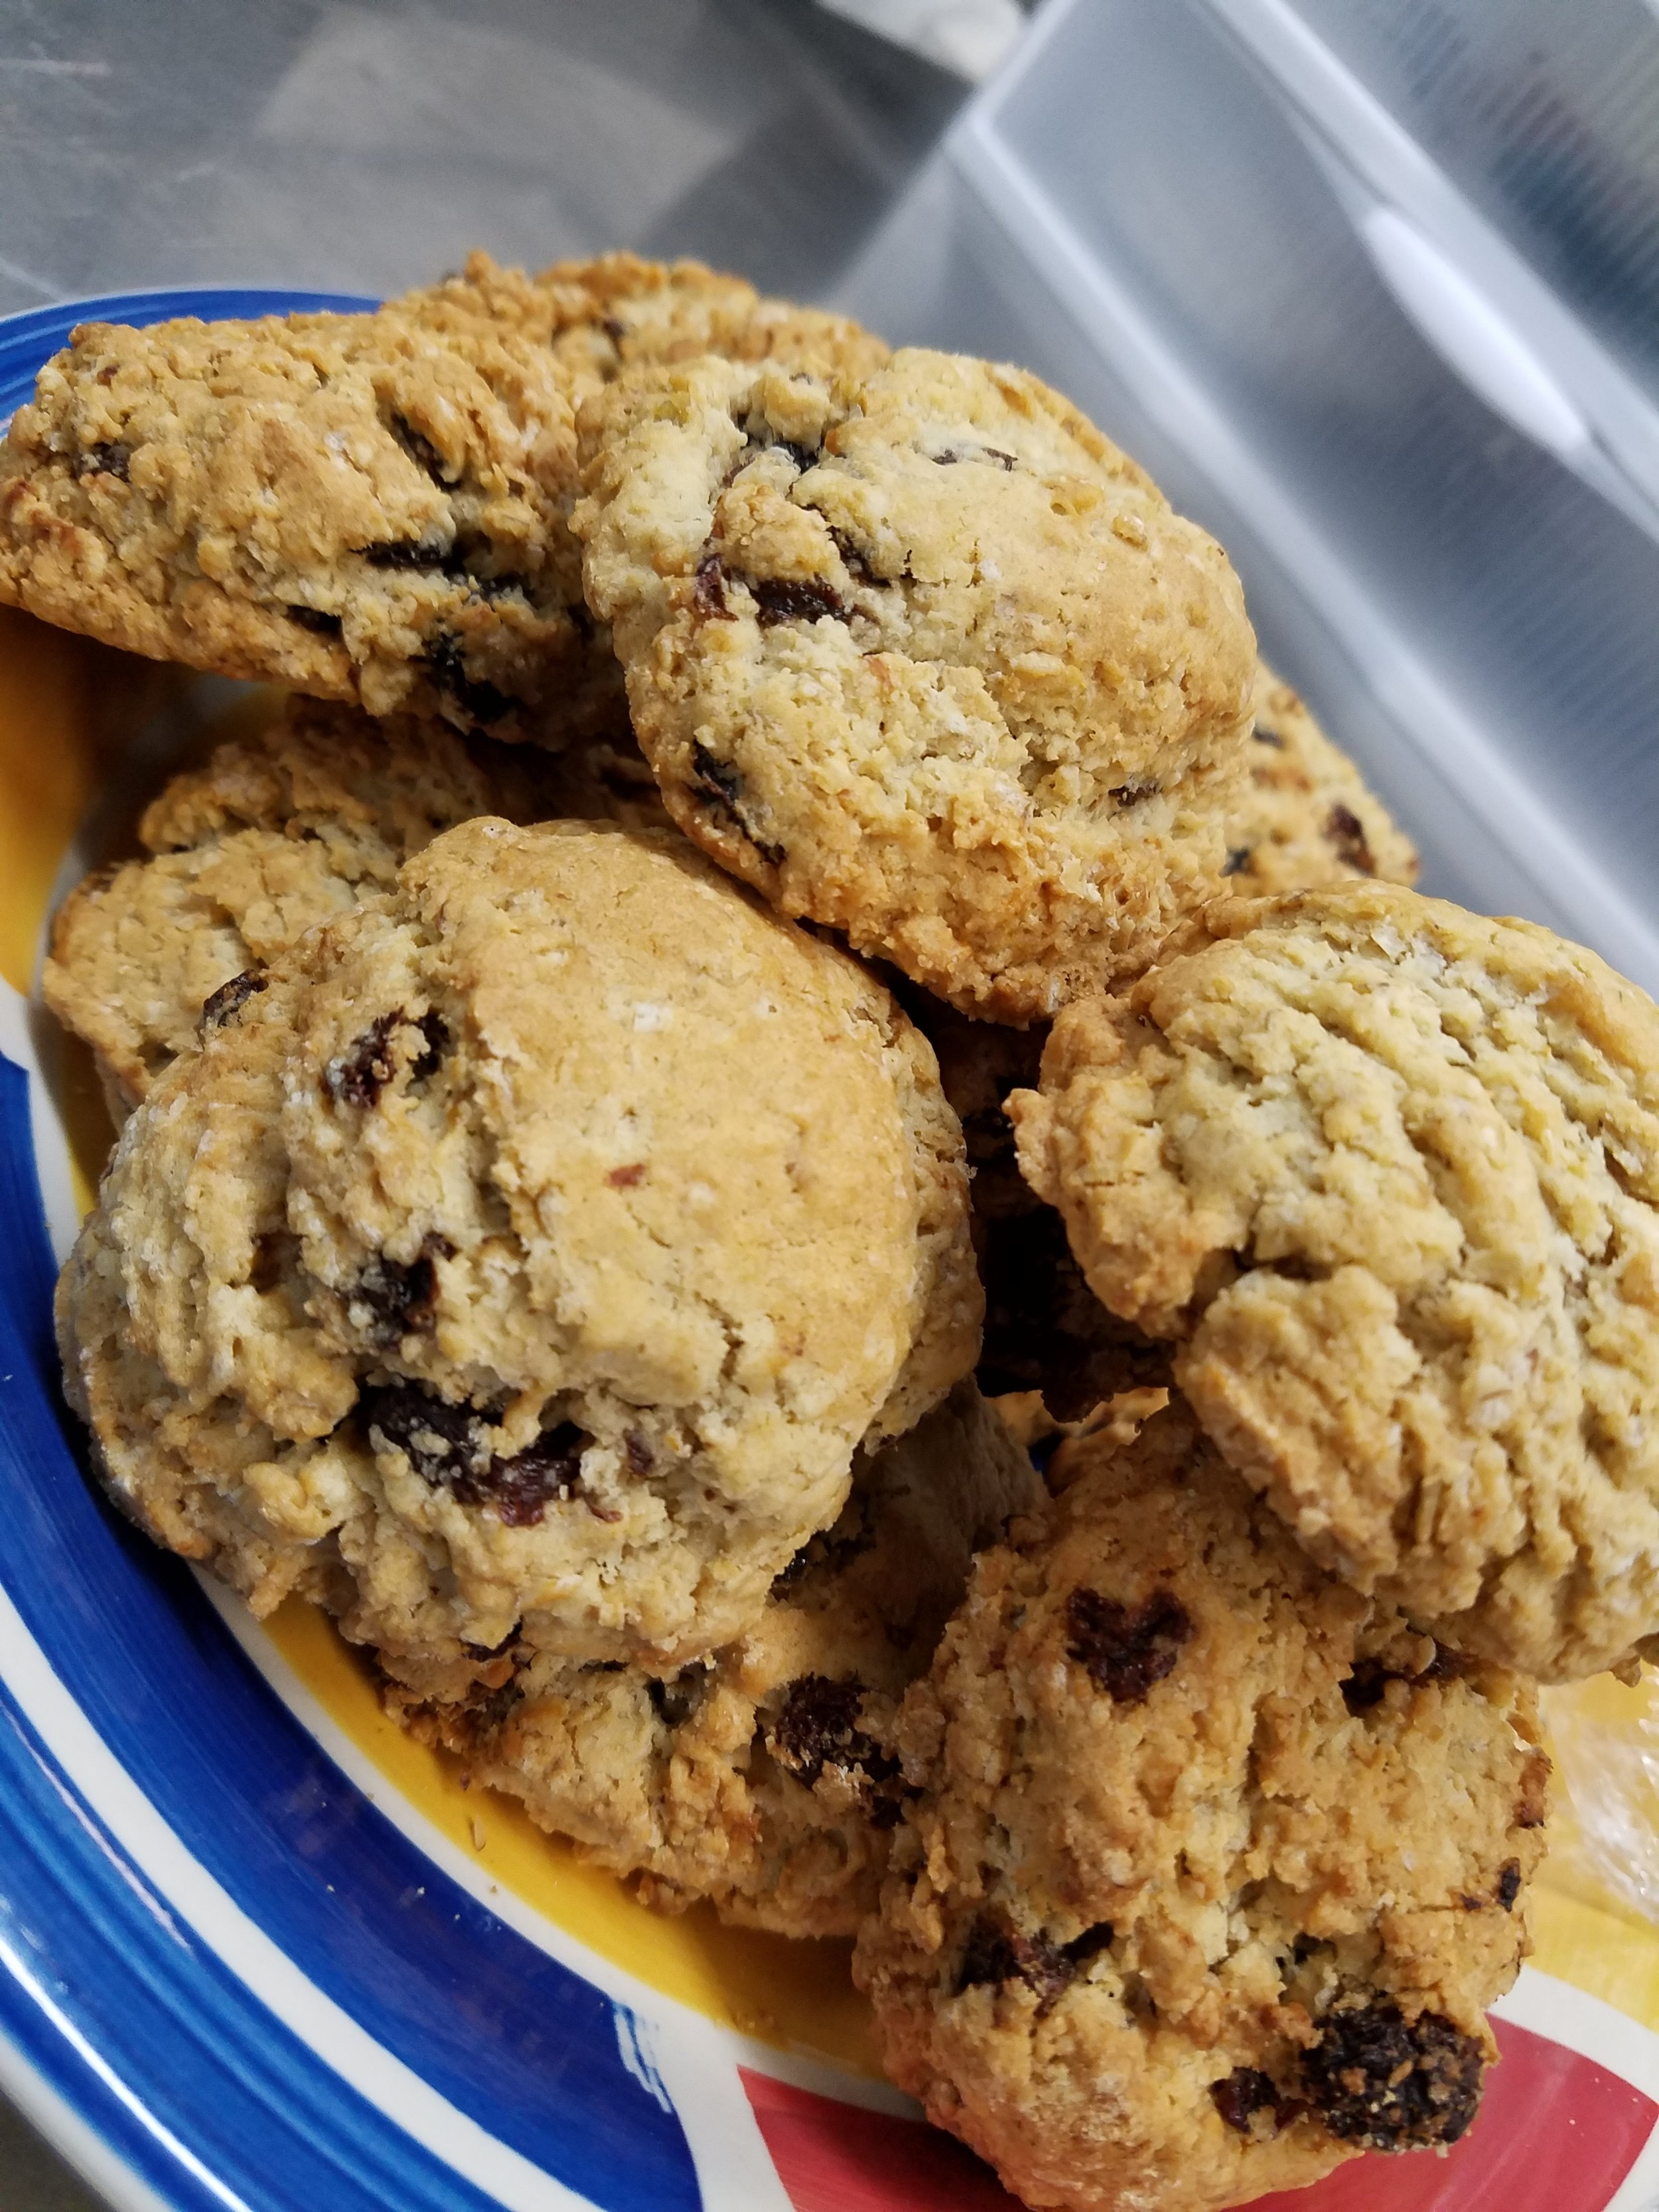 Chocolate Chip Waycross Cookies